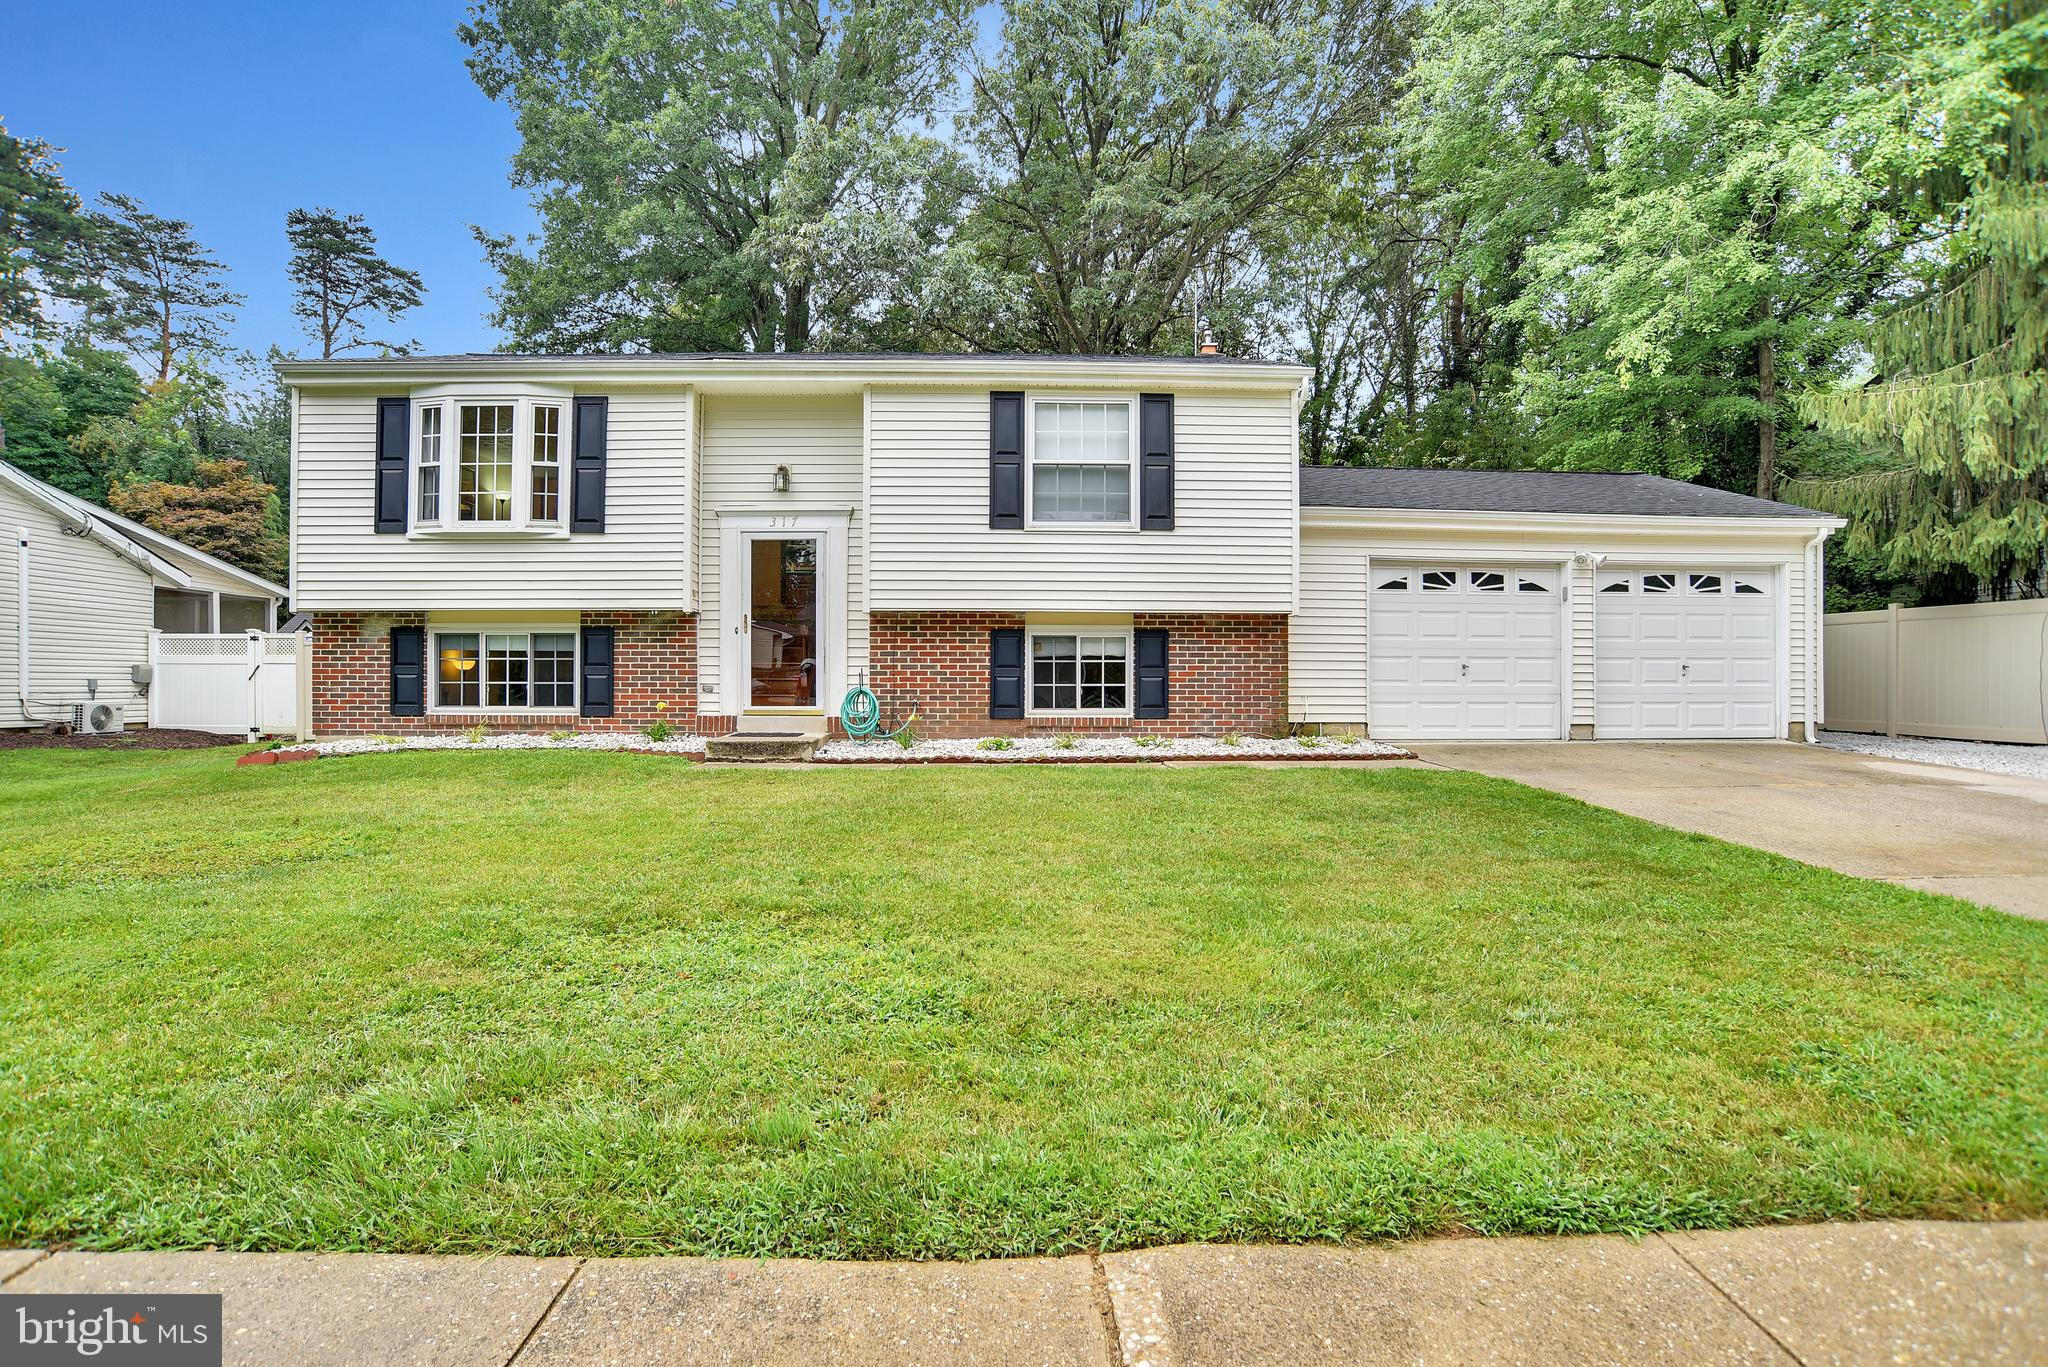 OPEN HOUSE Saturday September 18th 12pm-2pm!!!  Great home in Severna Park with huge 2-car attached garage for less than $500k!!!  Park your boat or RV in your own yard.  Served by the Severna Park school system plus their are loads of awesome recreation, shopping & dining options.  Easily access main routes to the Naval Academy, Ft. Meade, Baltimore, and the District of Columbia .  This Manhattan Beach Split Foyer has more than 1700sf of finished living space and there's plenty of room to grow, too!  The 2-car attached garage is HUGE (more than 500sf), there's a large level rear yard with mature trees and lots of shade, a new (installed late in '19) vinyl privacy fence and much more!  3 bedrooms, 2 full bathrooms plus the 2-car garage and the 3 rear decks including 2 that are covered/roofed decks.  There is a wonderful main floor with a Living Room that basks in natural light, has hardwood flooring and flows into the dining room and kitchen and a sliding glass door that flows onto the main level covered rear deck overlooking your humungous, shaded and fenced level rear yard.   The yard has a double drive-thru gate next to the garage and there is a playhouse/storage shed with electric and it's own porch situated on the rear of the lot.  The lot backs to a community owned Open Space (so no rear neighbor).  The garage has a walkout rear door to a covered deck and that deck connects to an open deck that has stairs to the main level covered deck.   Back inside, the kitchen has updated Stainless Steel appliances, a dual ceramic sink, and a ceramic tile floor.  The Living room and hallway has hardwood flooring and the hall connects to the two upper floor bedrooms which both have laminate wood floors.  There is a beautifully updated full bathroom on the main level, too.  Down the stairs to the lower level we find a large family room with ceramic tile flooring, loads of natural lighting and a corner pellet stove to take the chill off on a cool autumn or winter night.  The o